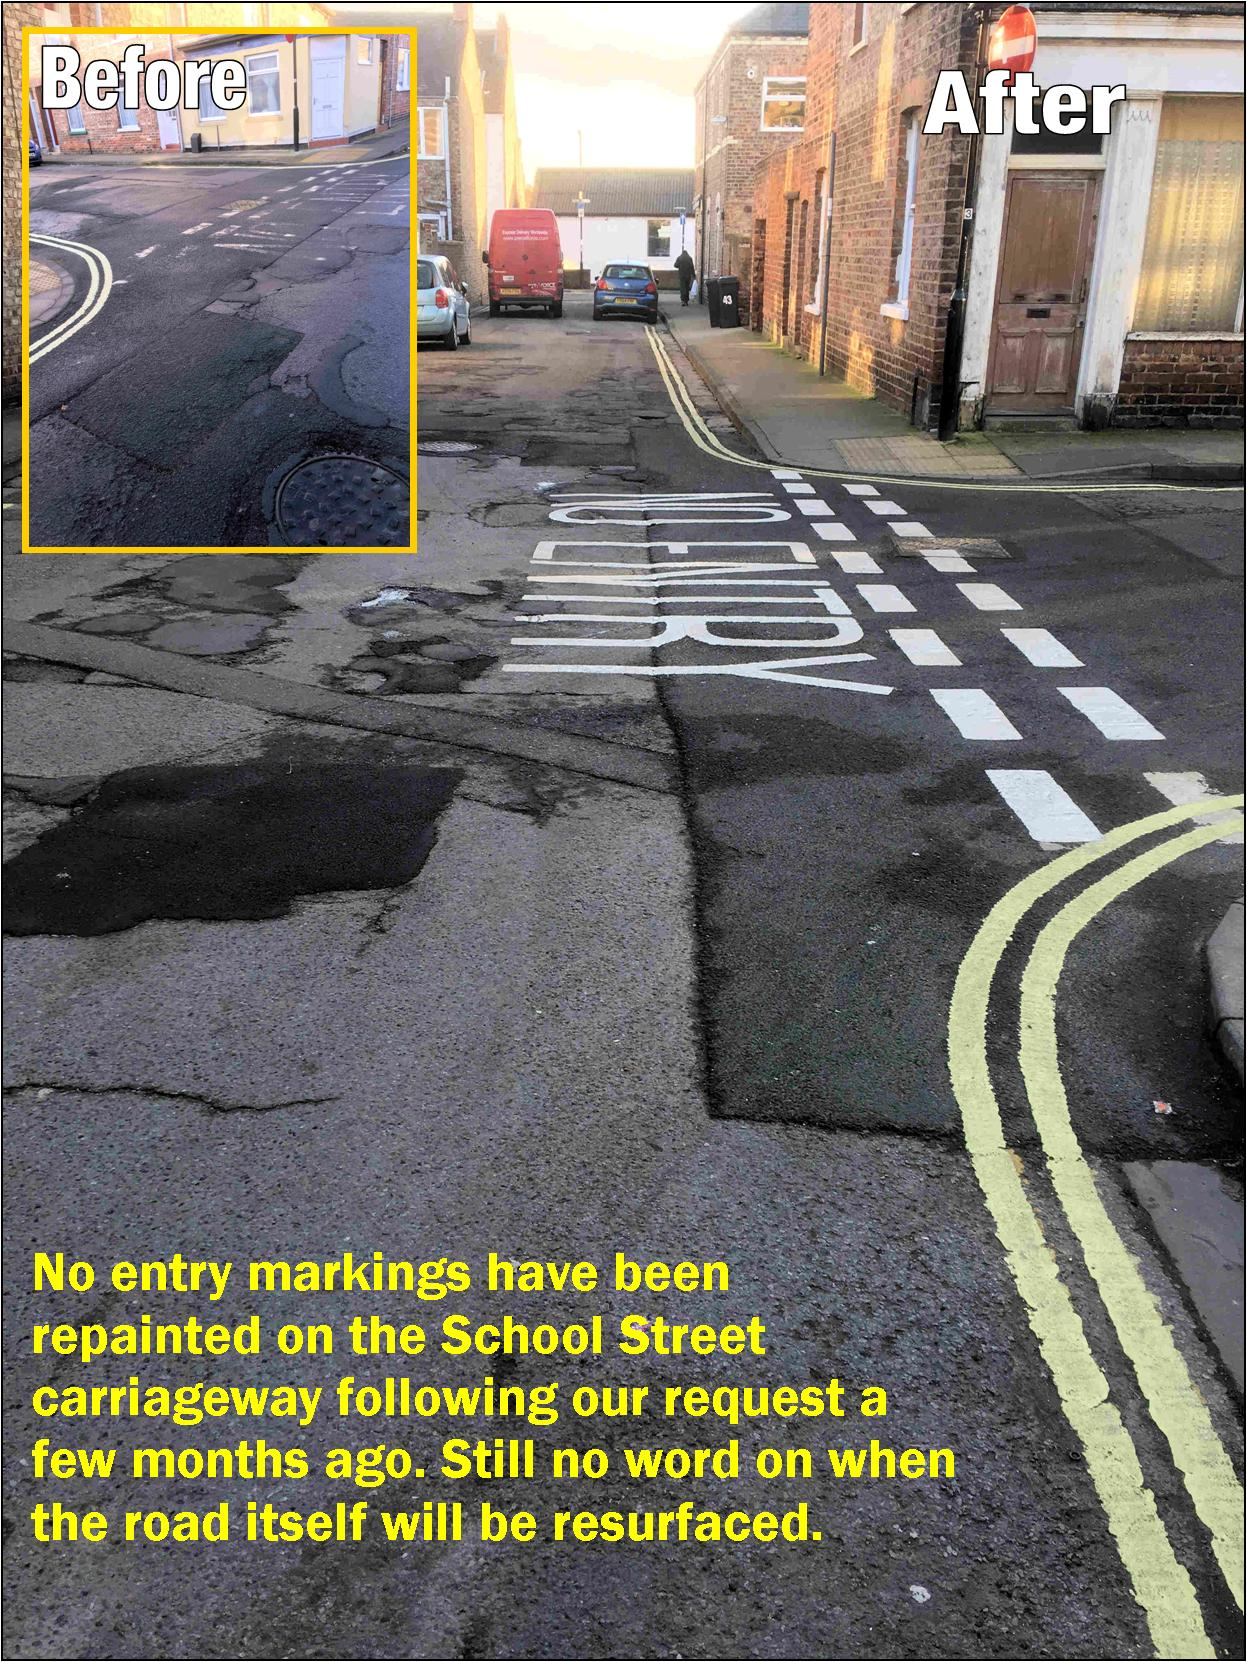 schools-st-no-entry-markings